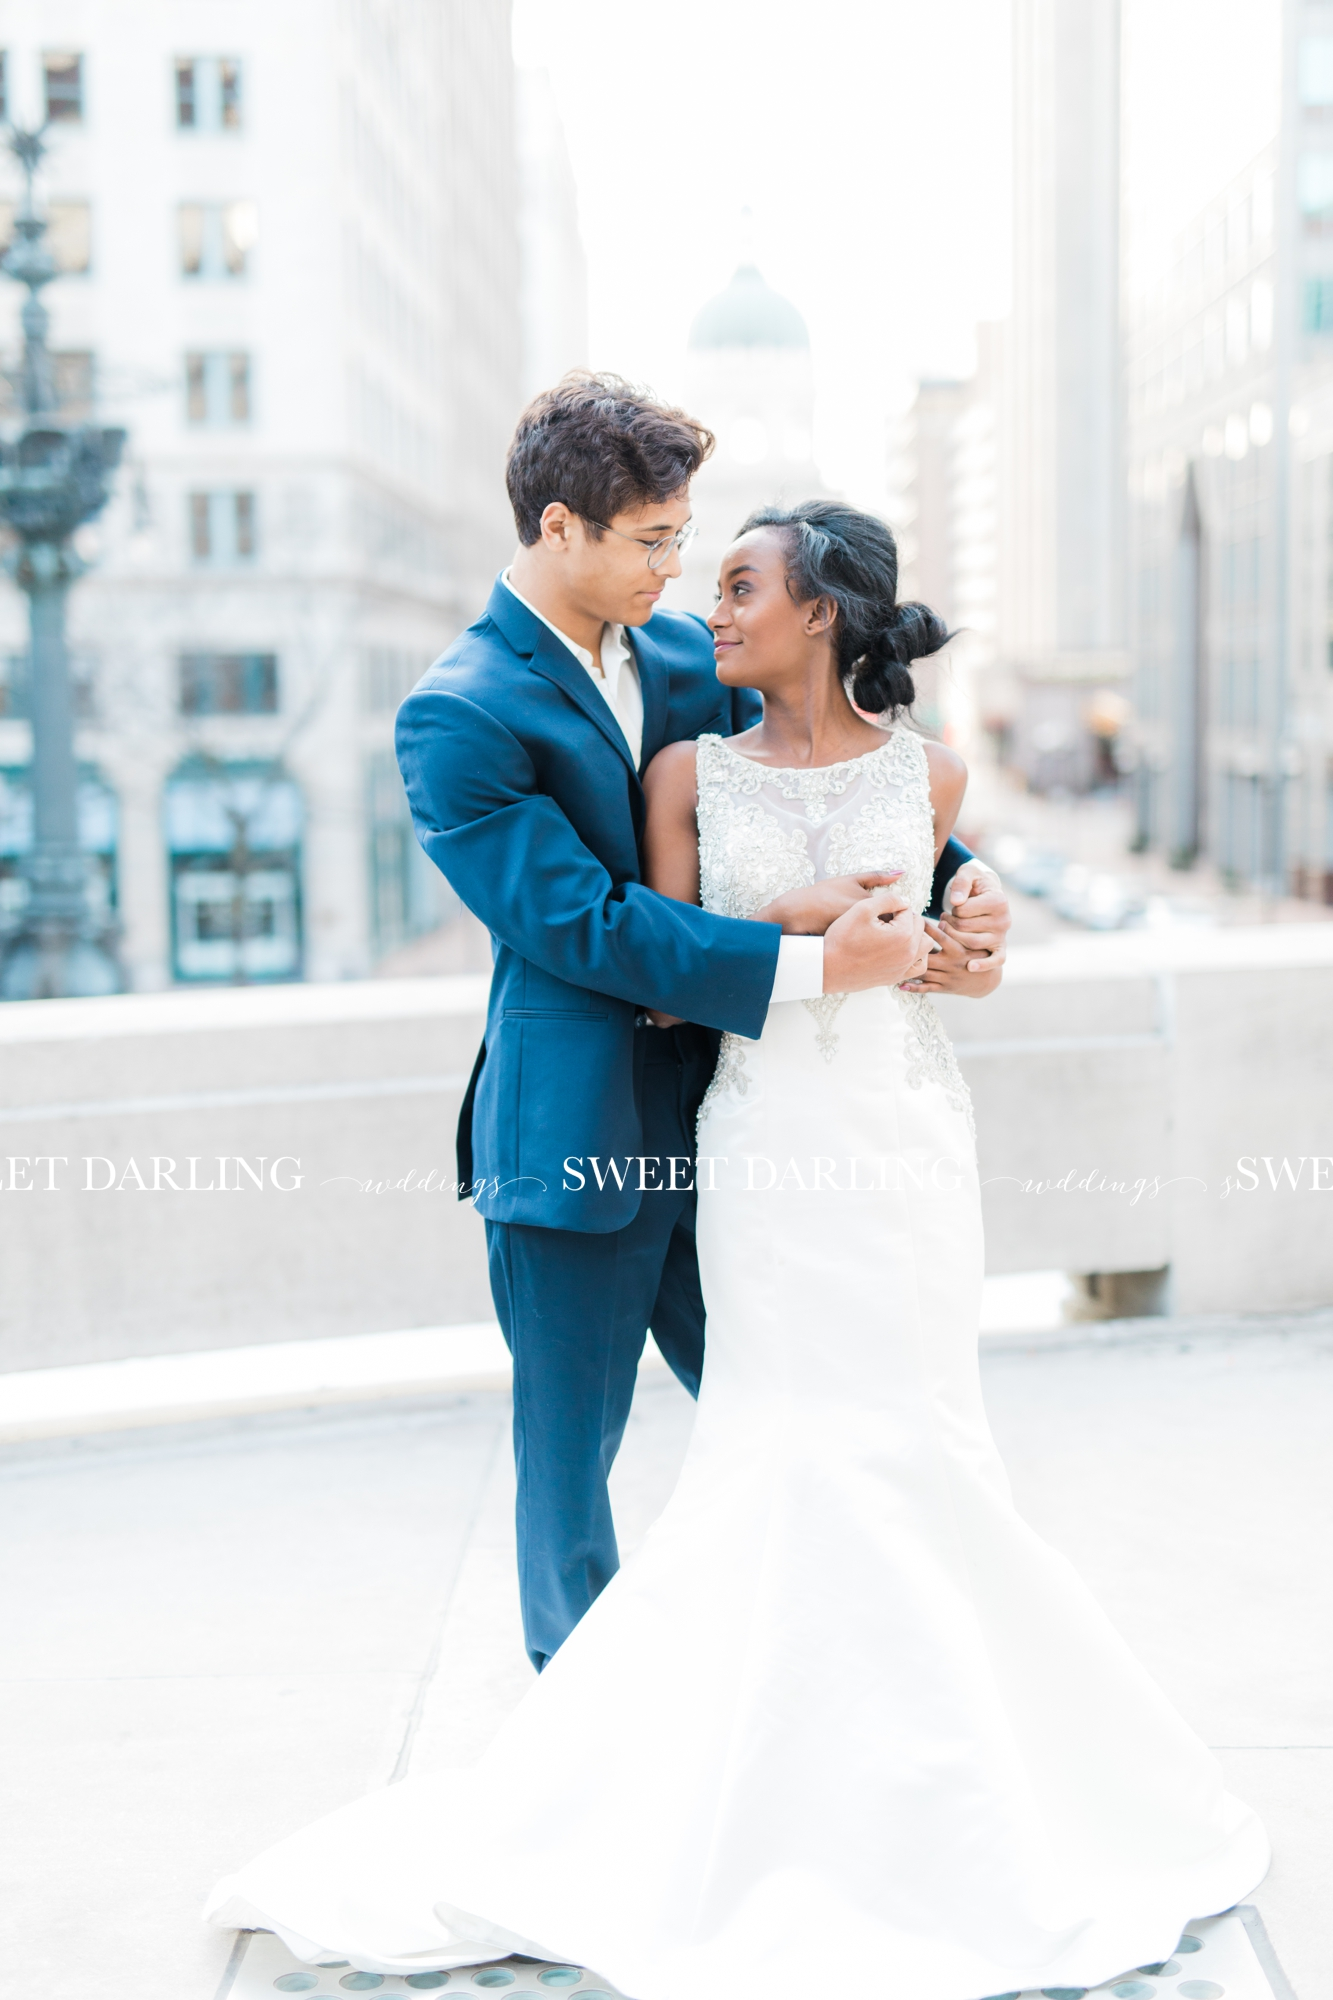 Indianapolis-Indiana-Wedding-photographer-urban-sweet-darling-champaign-IL_1498.jpg